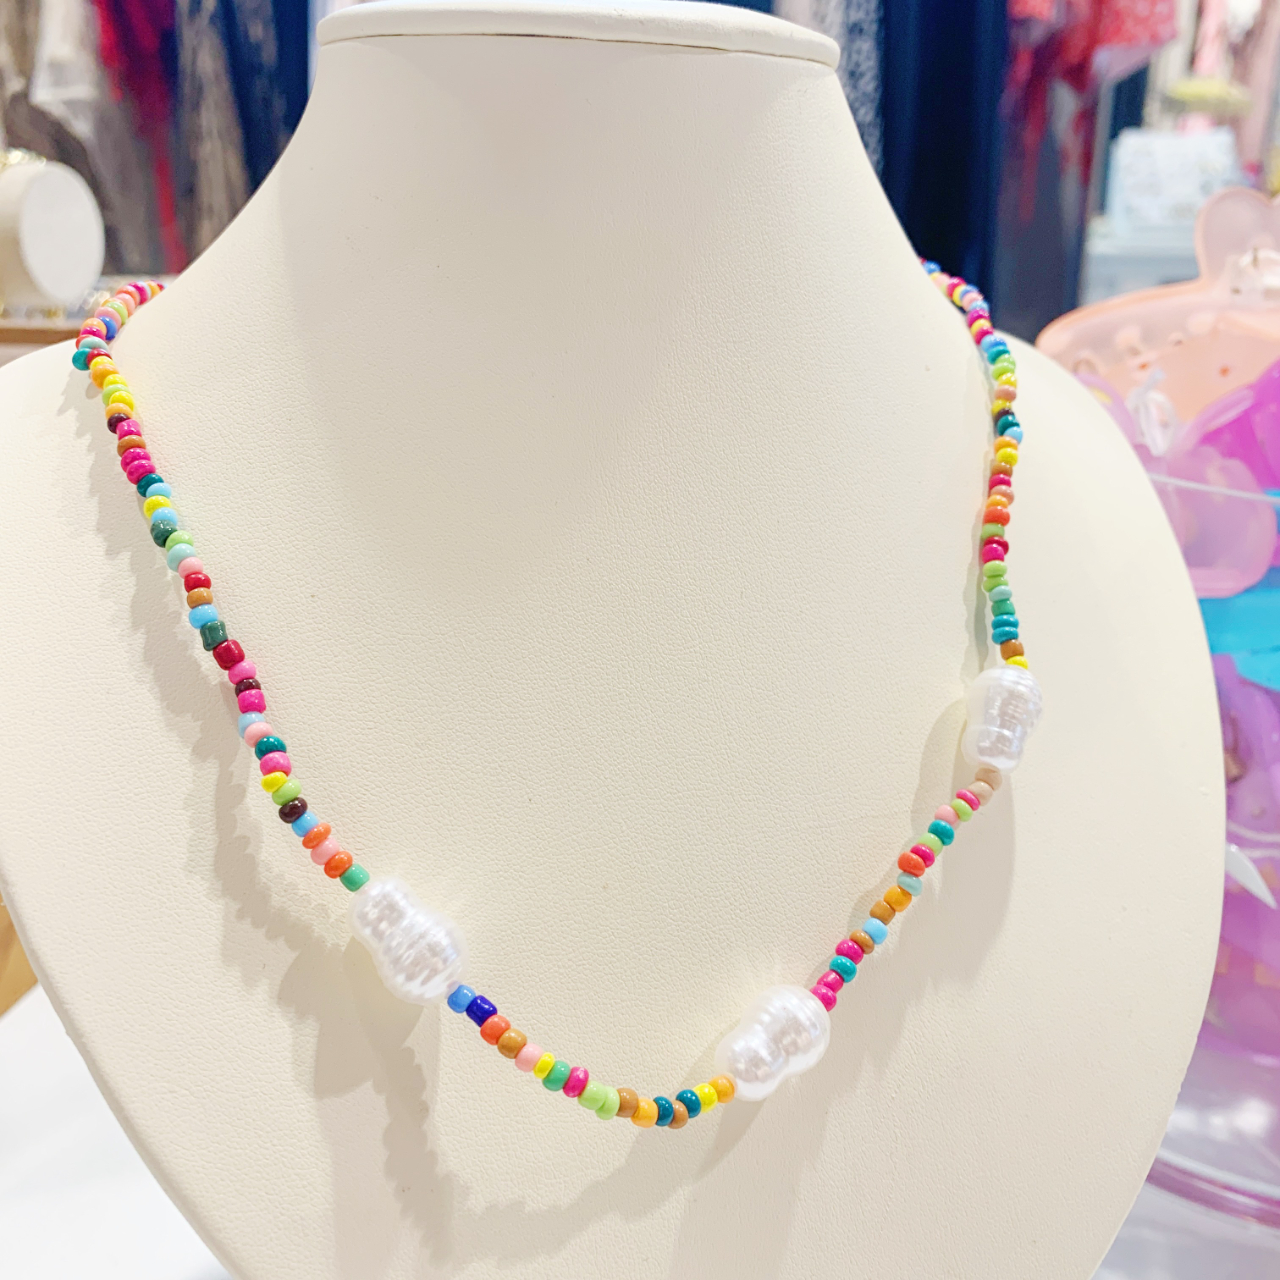 Product Image 1 - Adorable multi colored beaded necklace